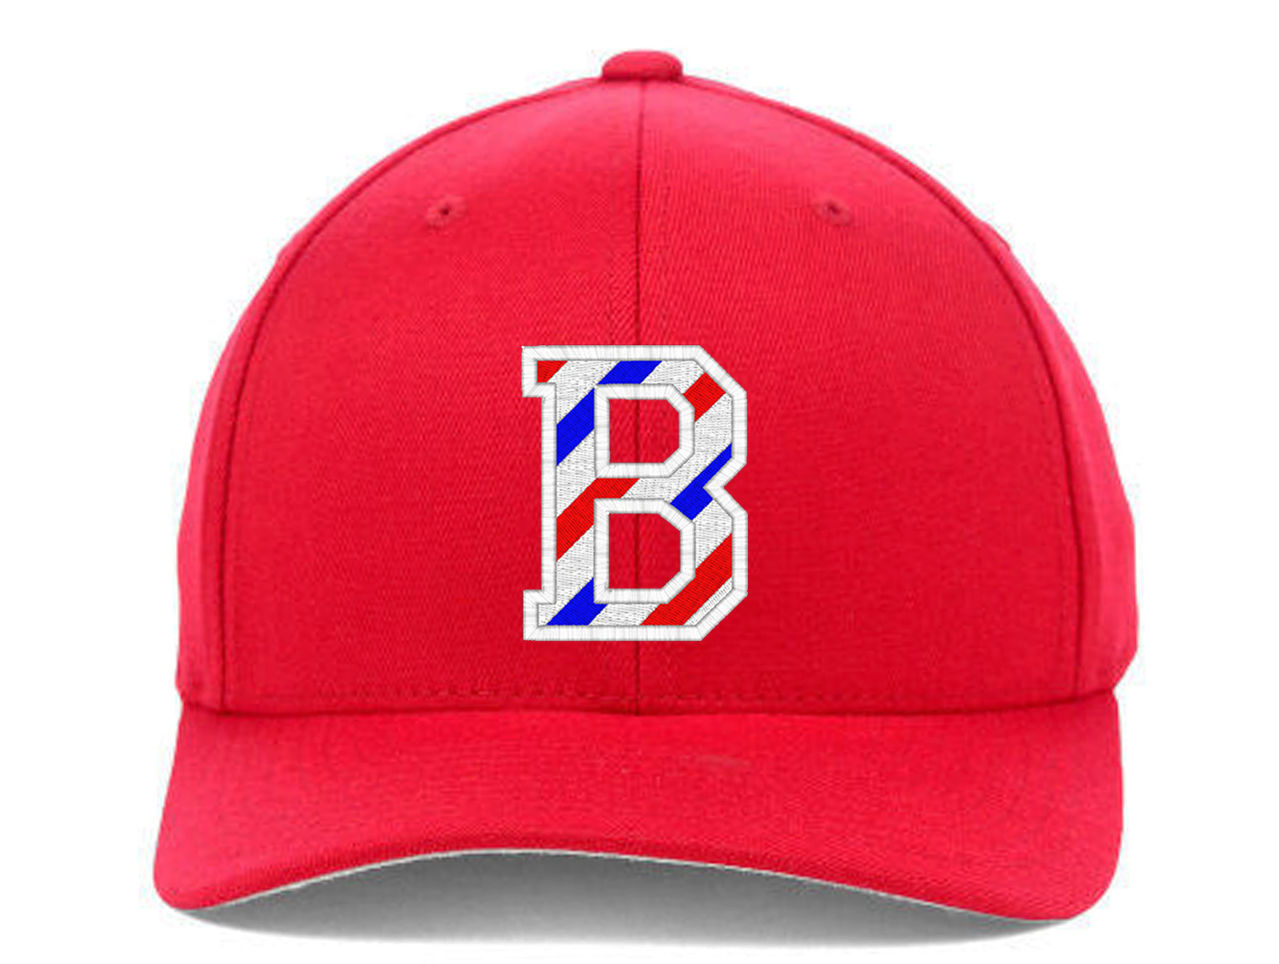 BARBER B Logo with Barber Pole Stripes Embroidered, Flexfit Hats